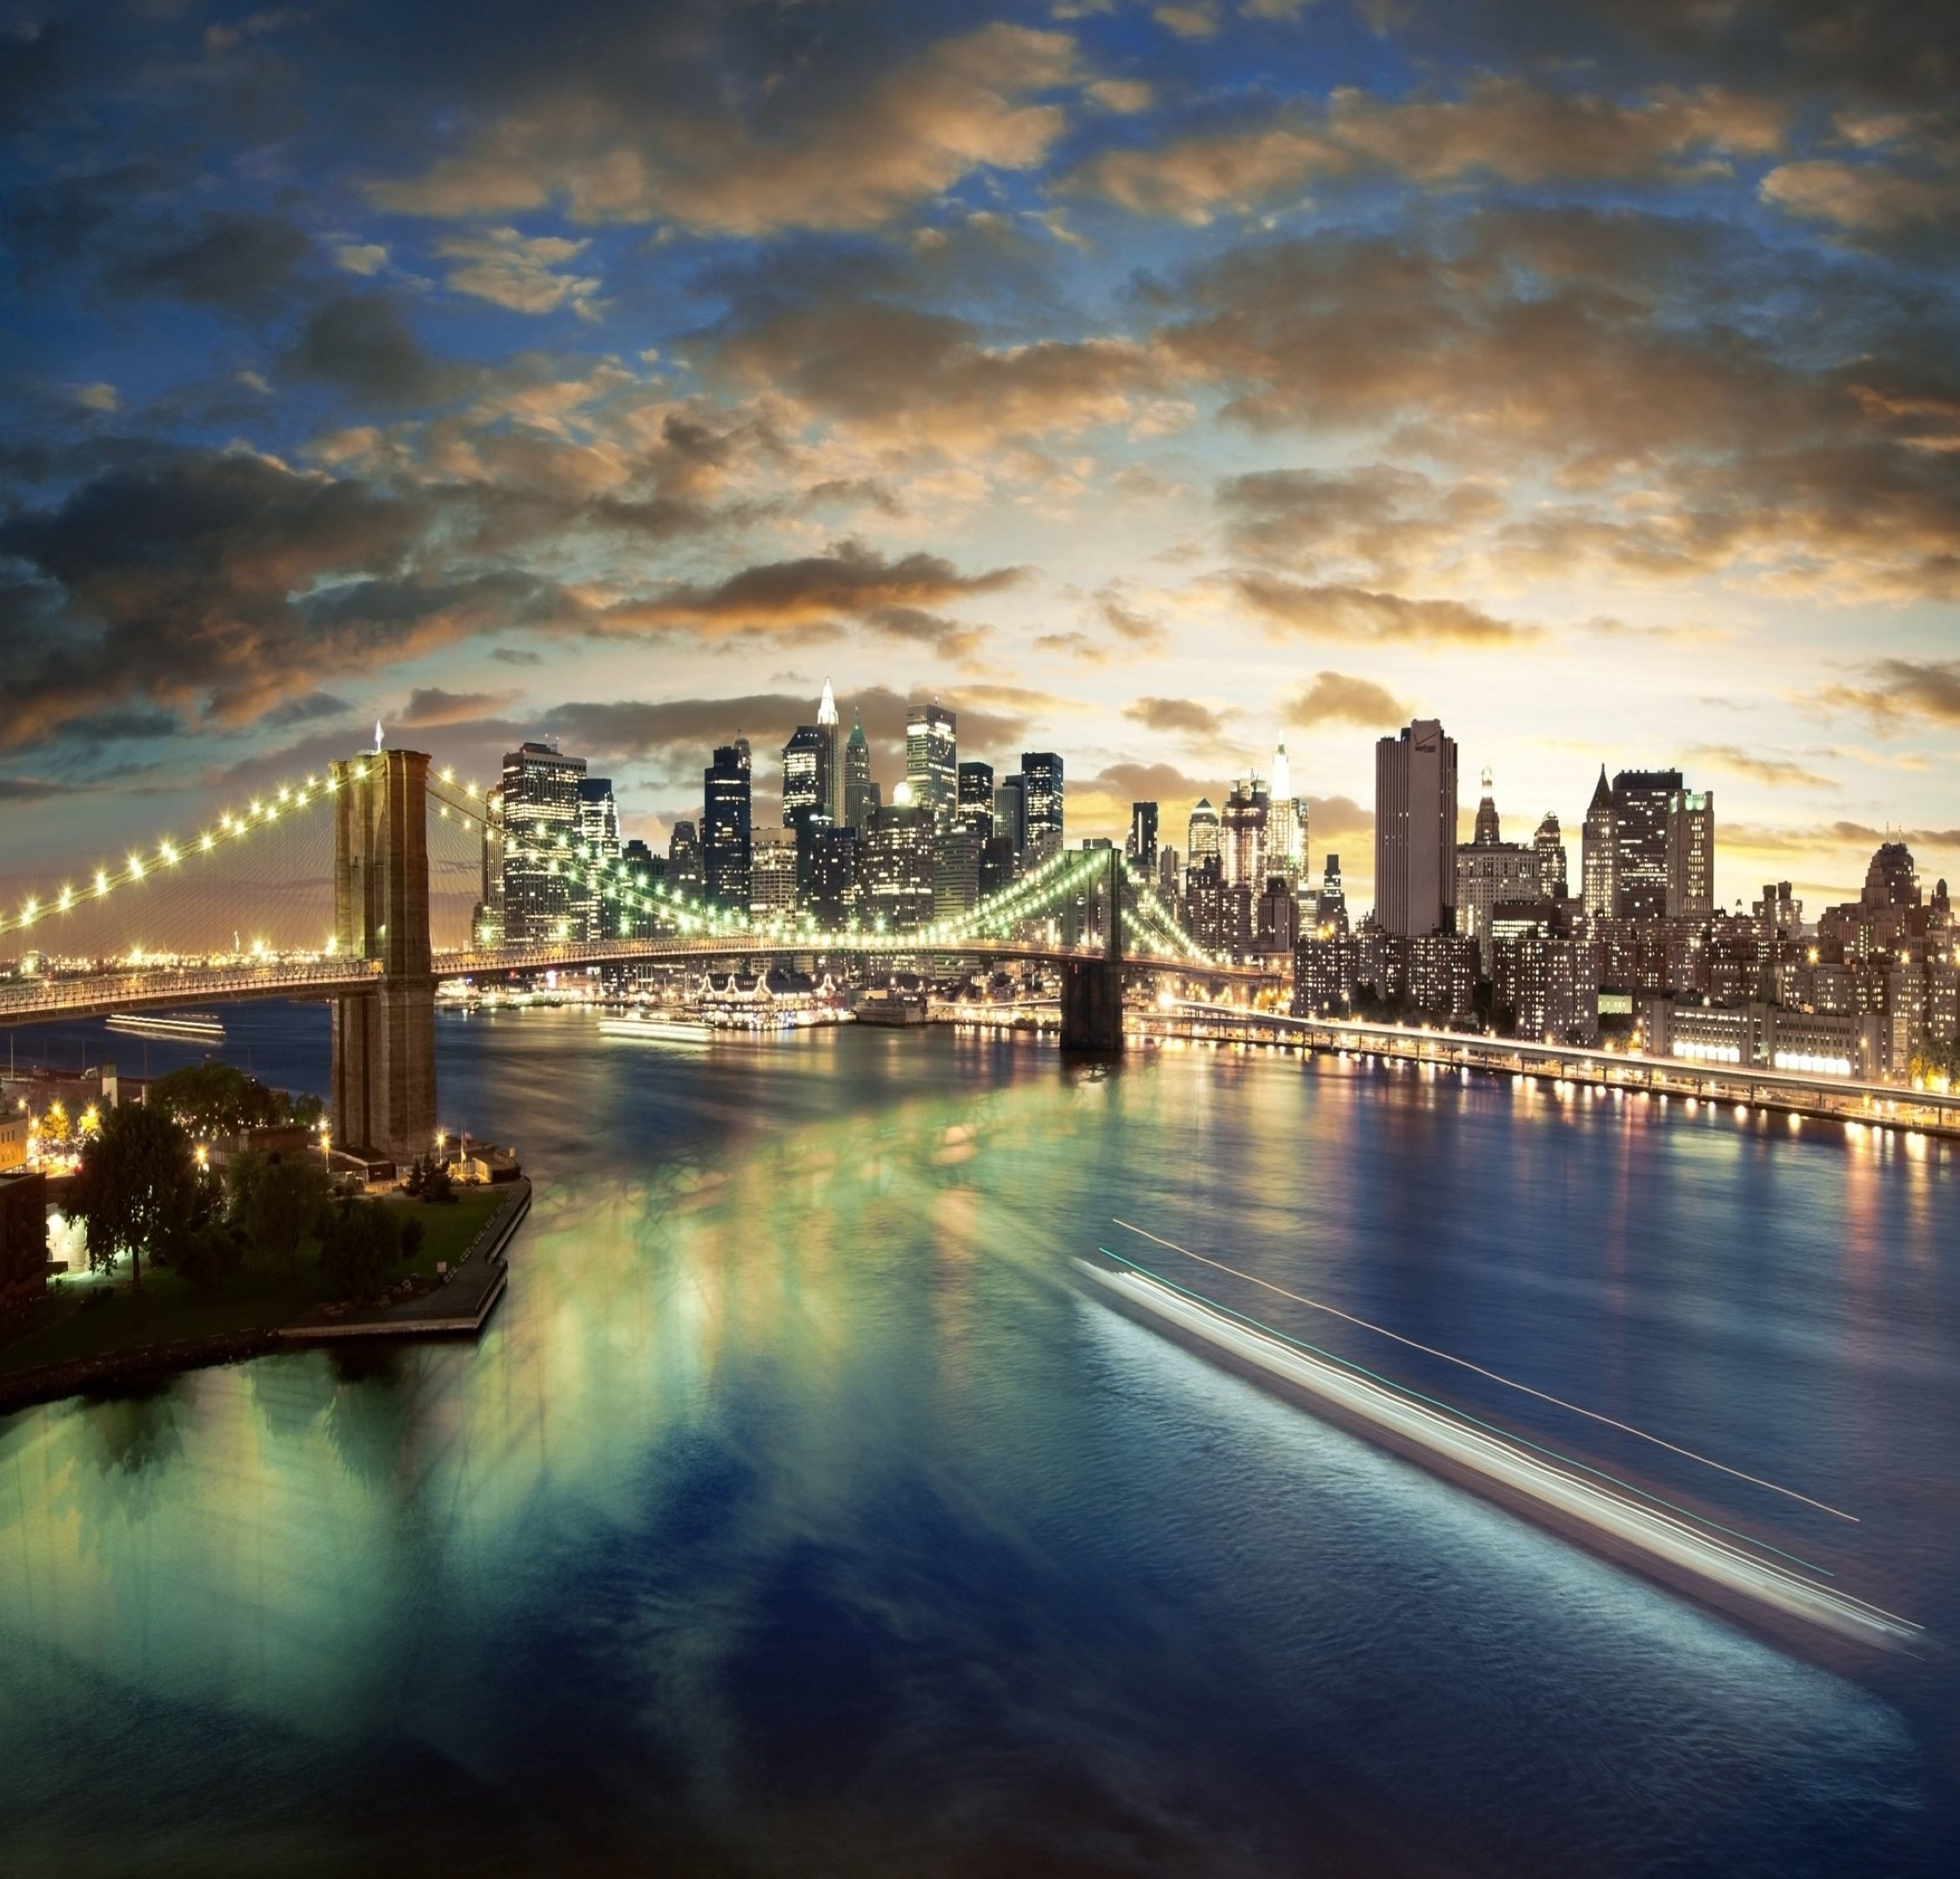 New York City For IPad Wallpaper: Desktop HD Wallpaper